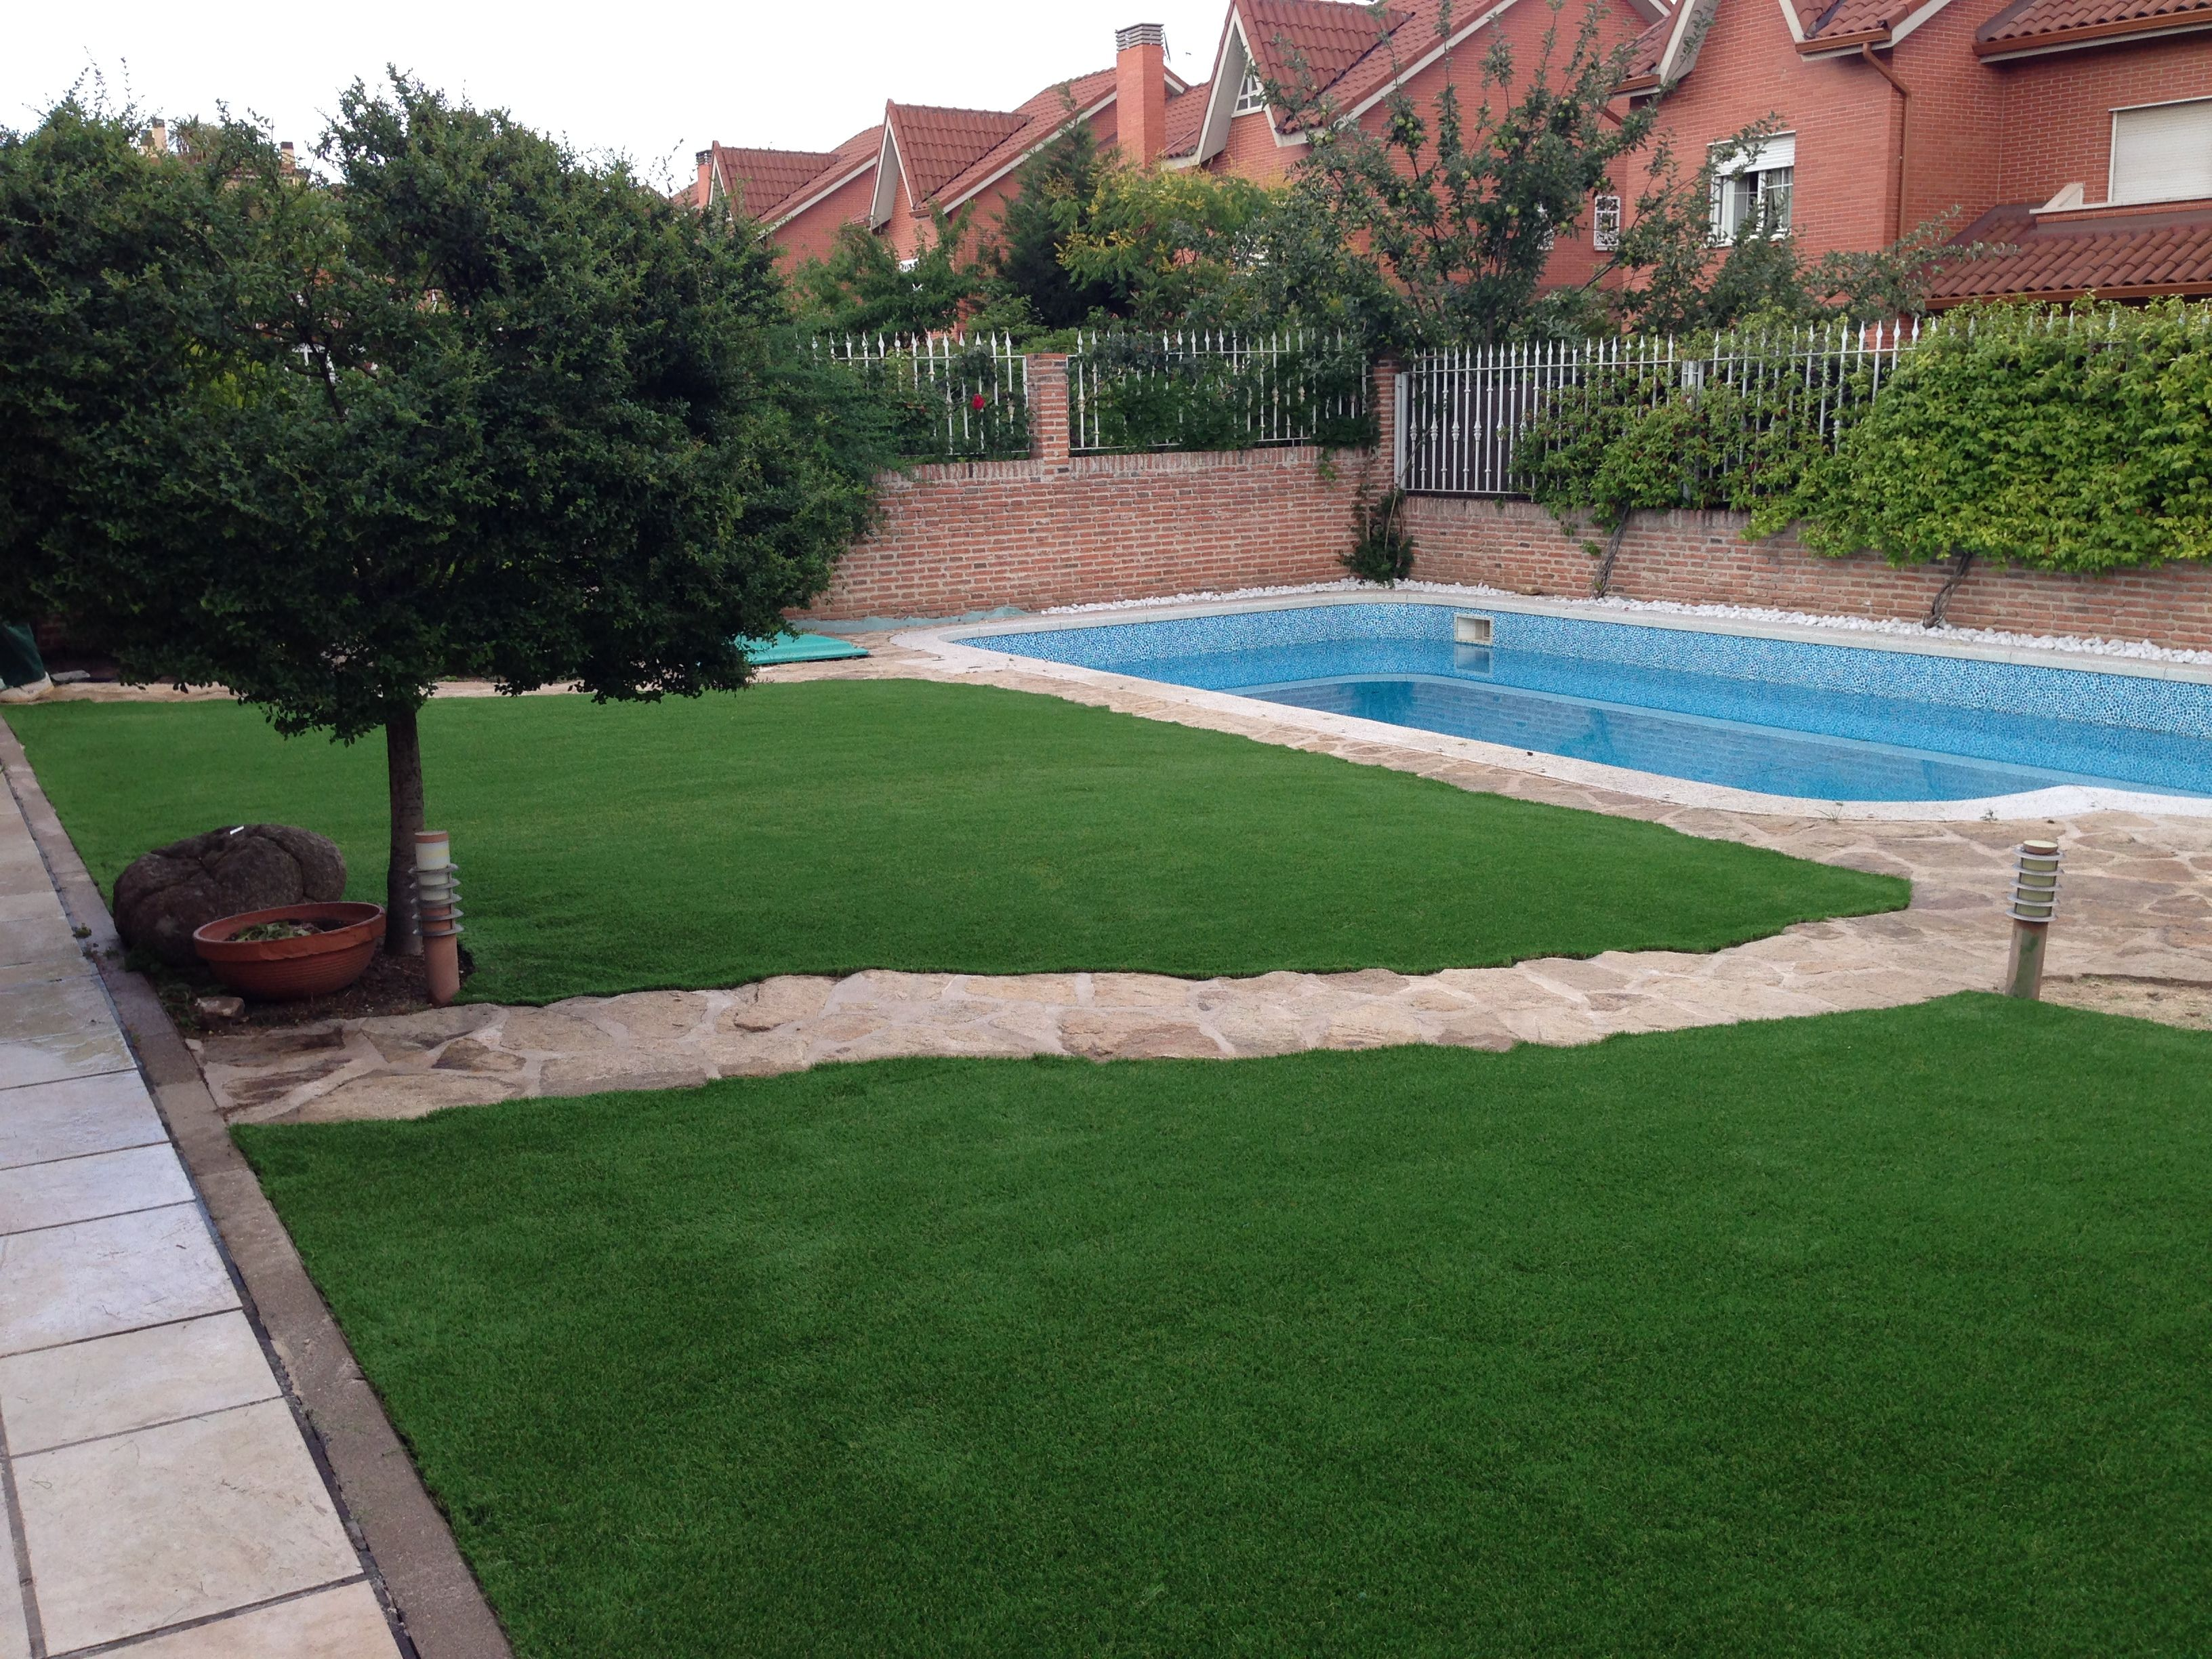 Jardin con c sped artificial para so xtra alrededor de - Cesped artificial tarkett ...